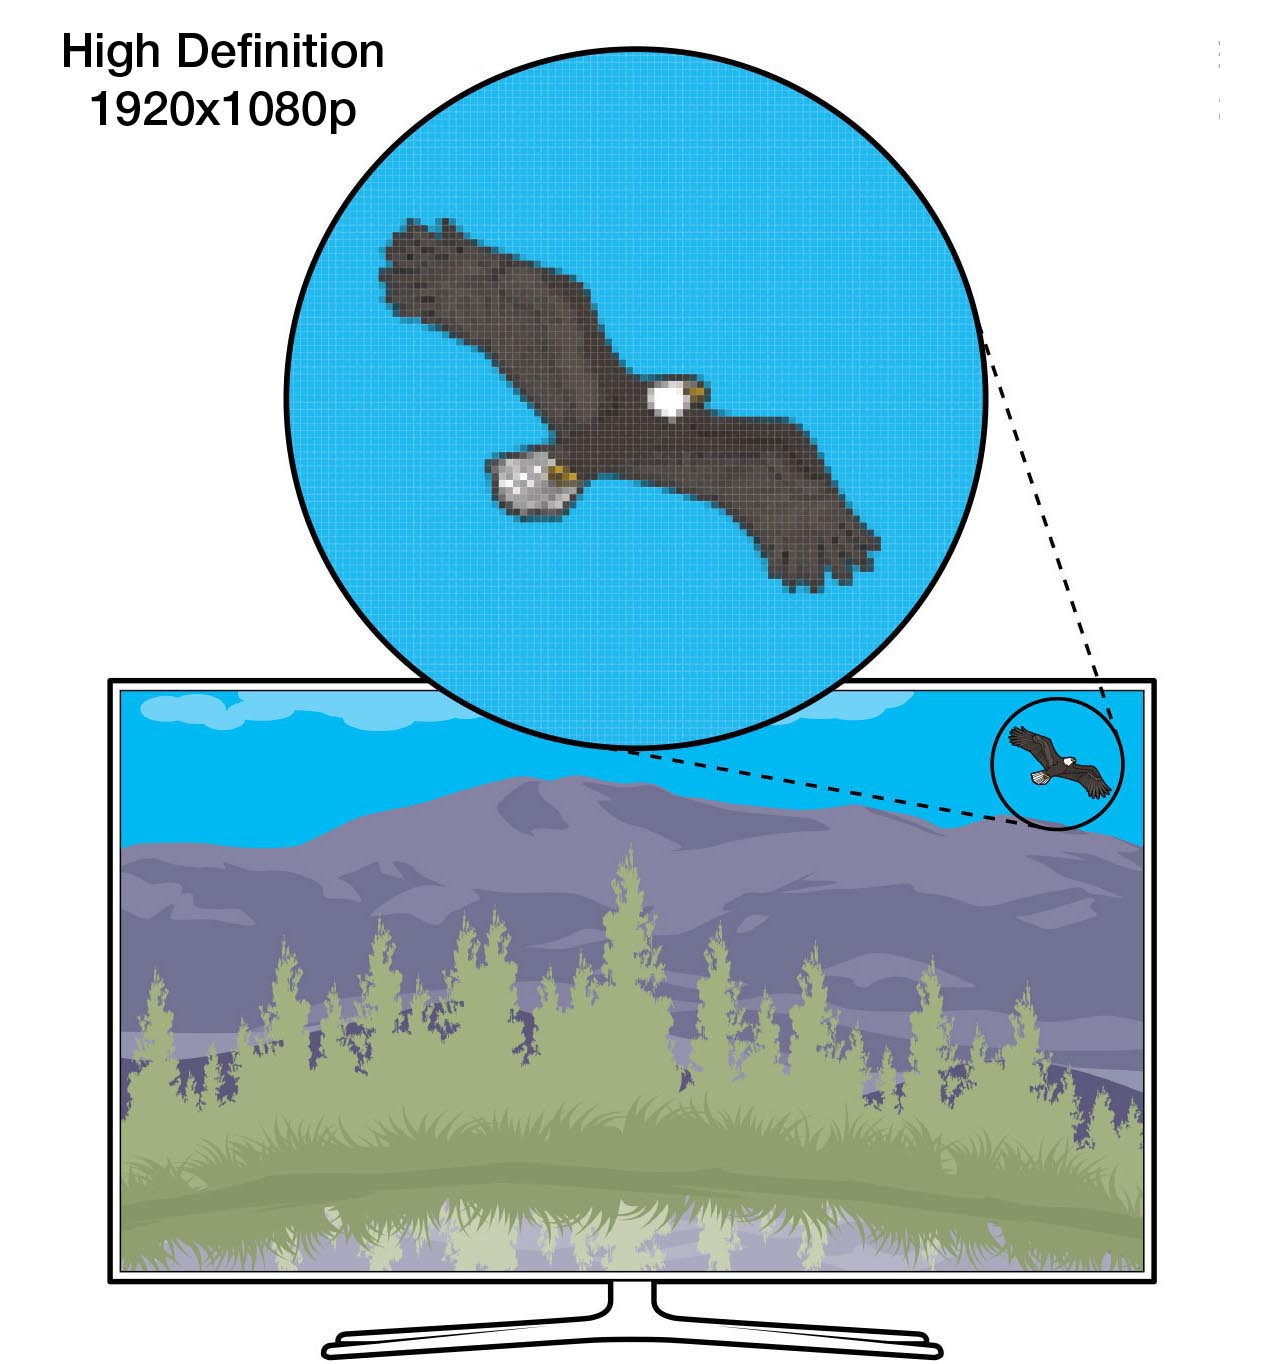 An illustration showing a close-up of the pixels of a 1080p HD TV, highlighting the visual detail capabilities of such a high-definition TV set.